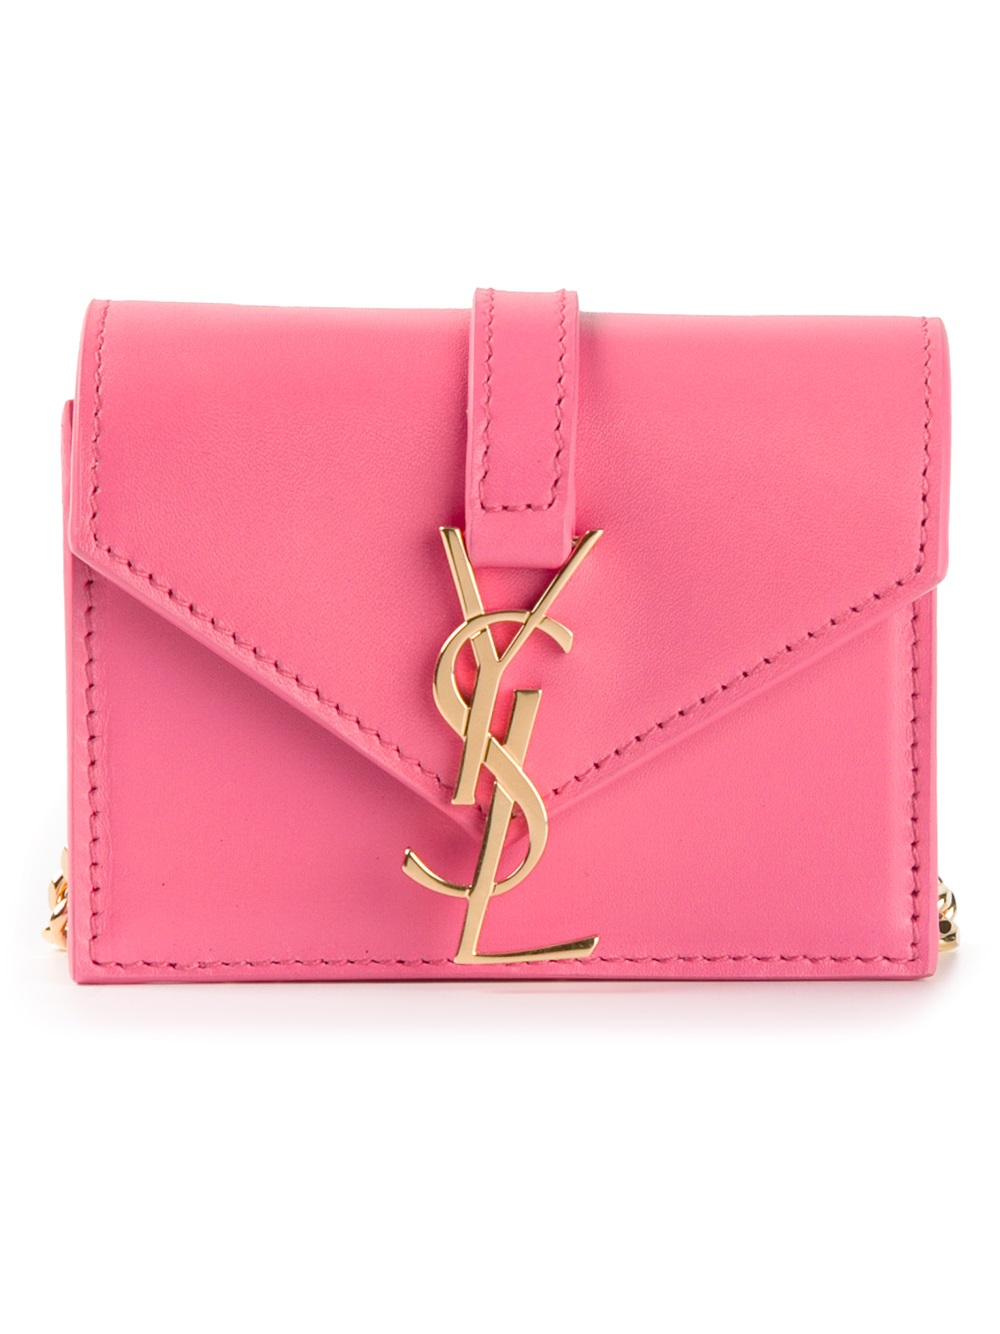 1997d2a6122f Lyst - Saint Laurent Monogramme Candy Bag in Pink